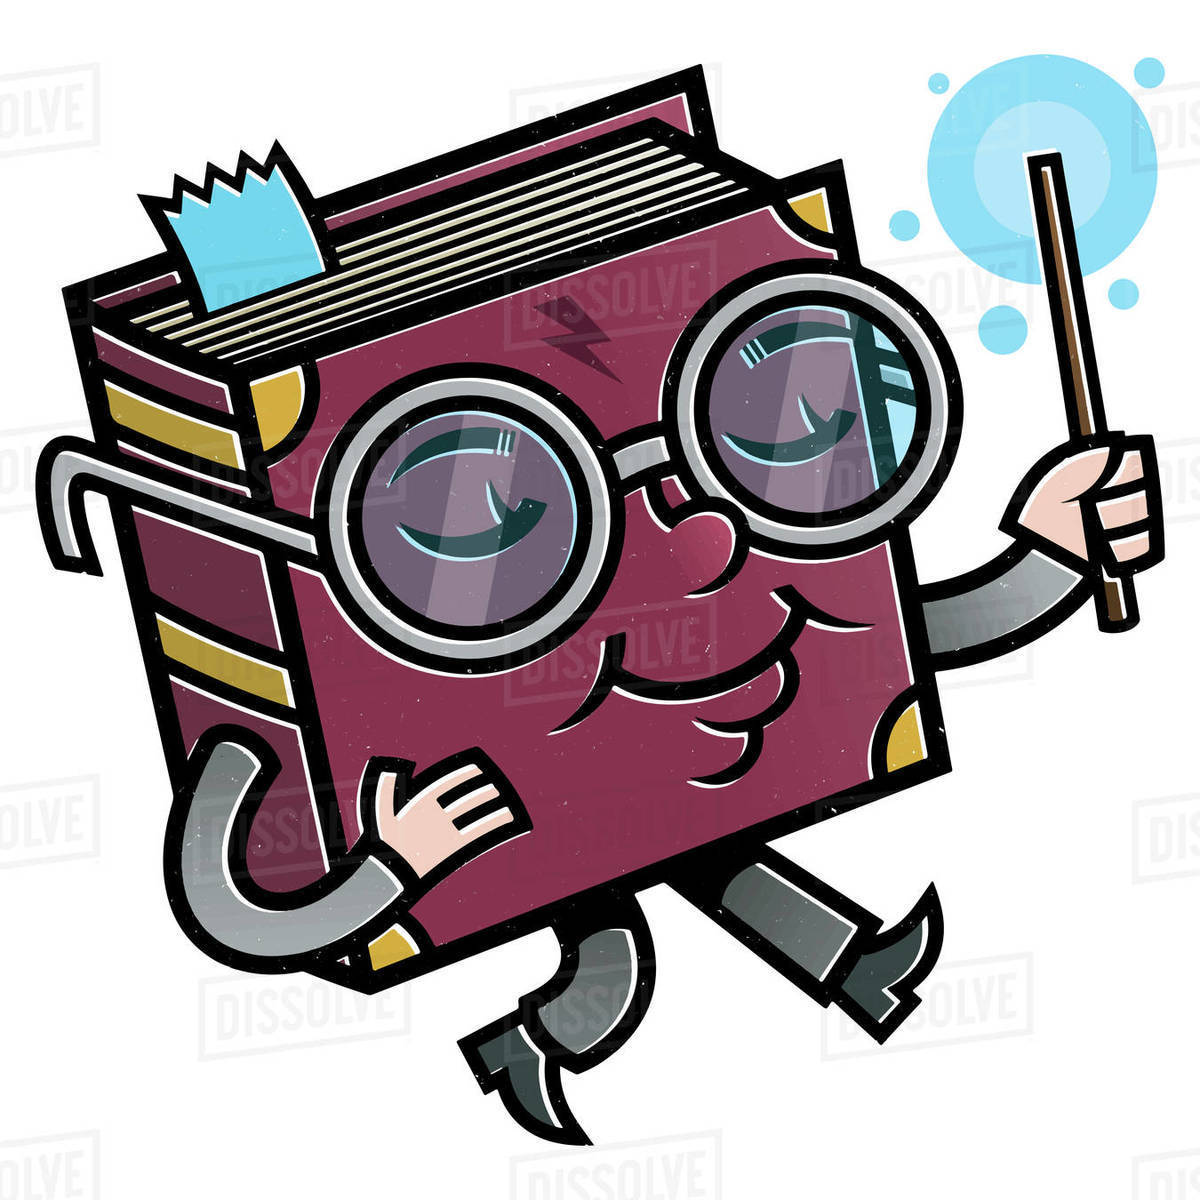 Cartoon illustration of book wearing eyeglasses holding baton against white background Royalty-free stock photo